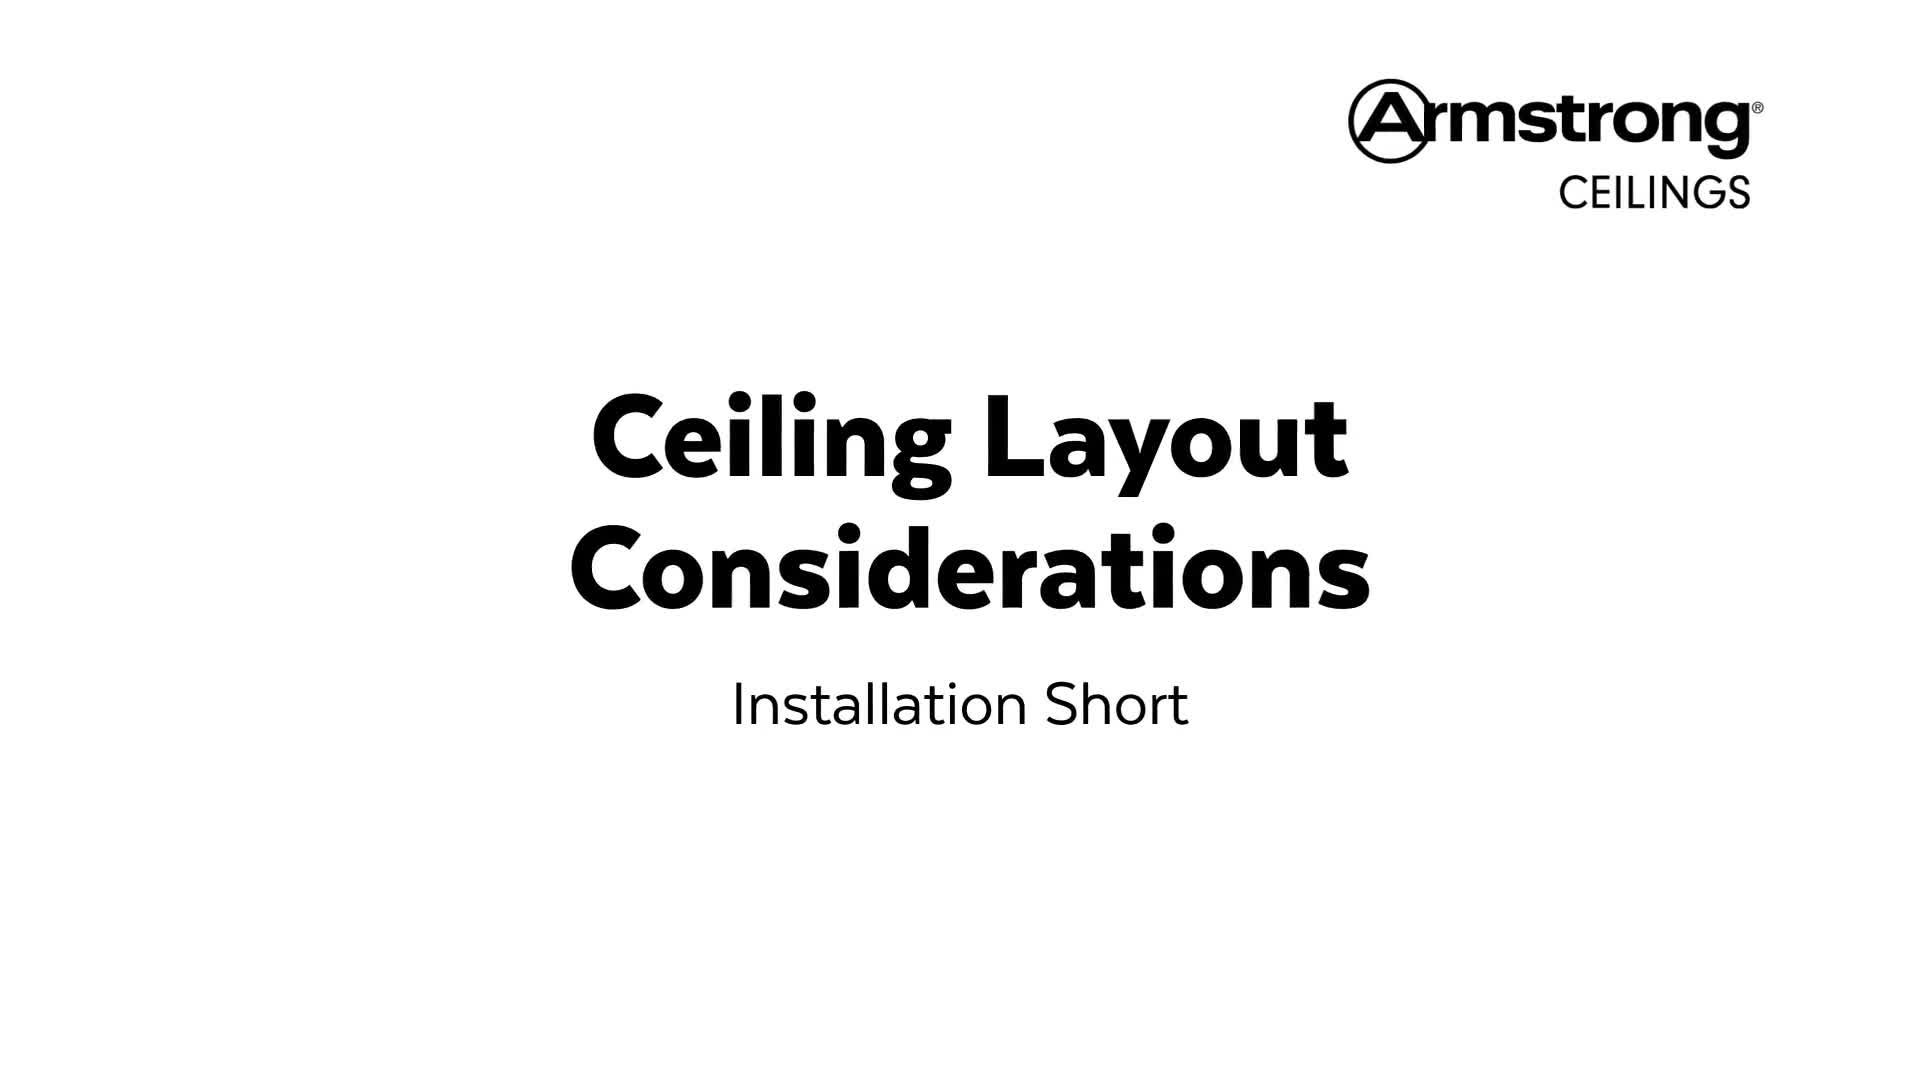 armstrong ceilings 48 in x 24 in textured contractor 10 pack white fissured 15 16 in drop acoustic panel ceiling tiles